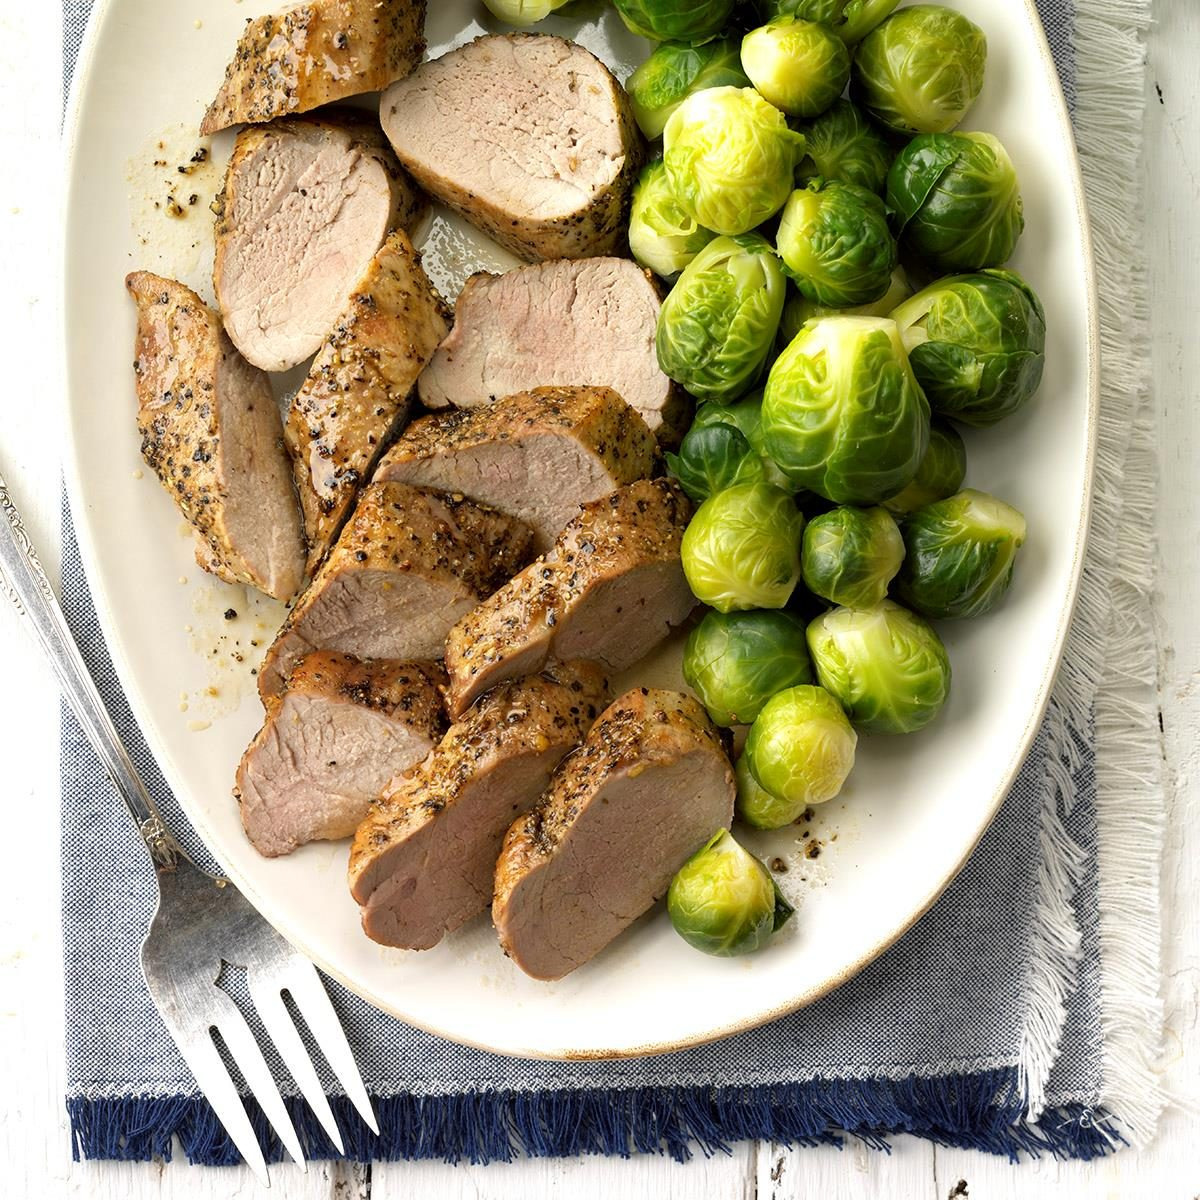 Saturday: Maple-Glazed Pork Tenderloin